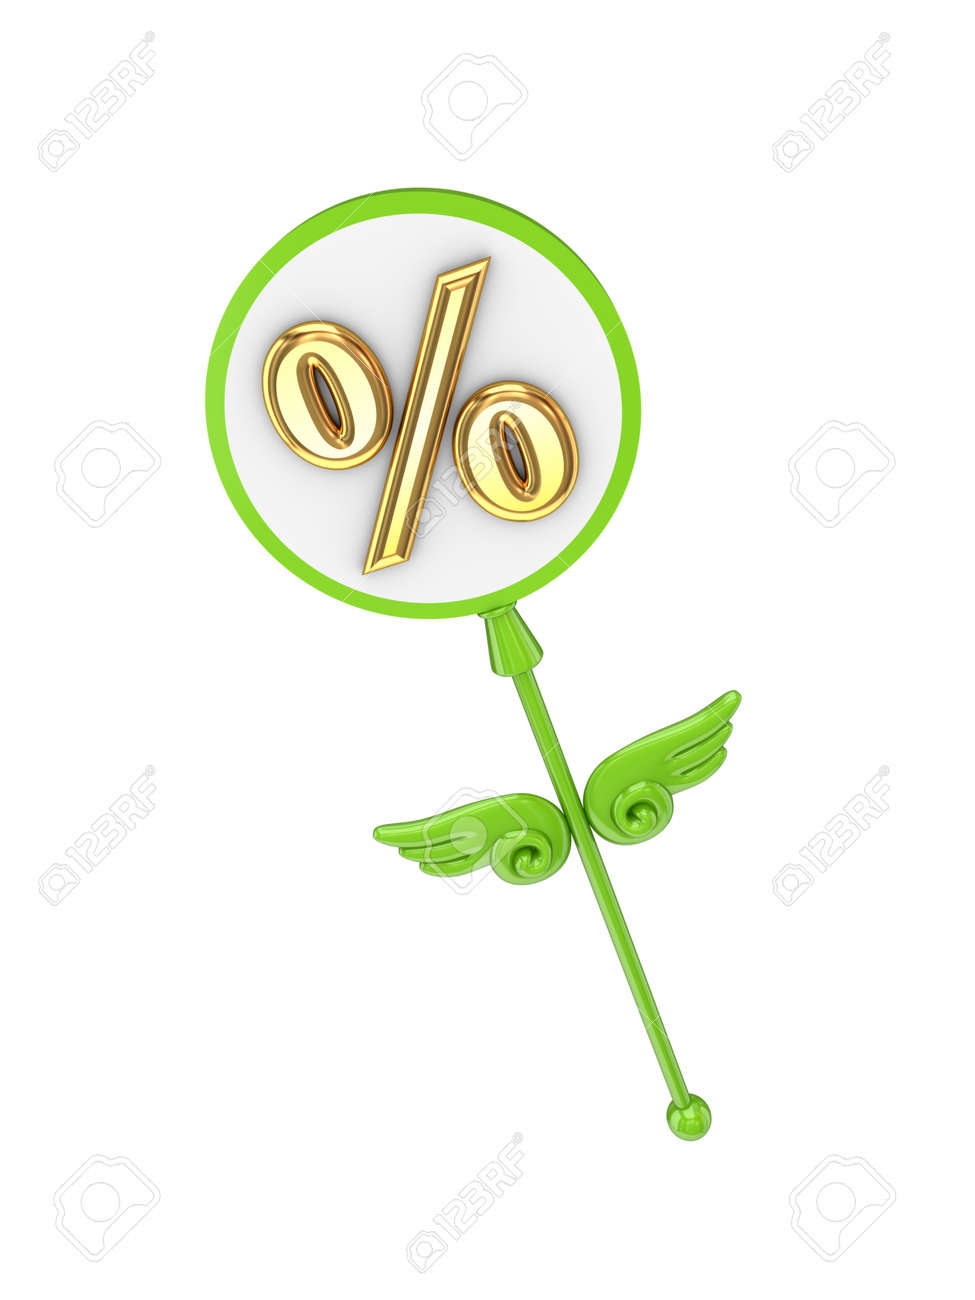 Magic wand with percents symbol Stock Photo - 14451967